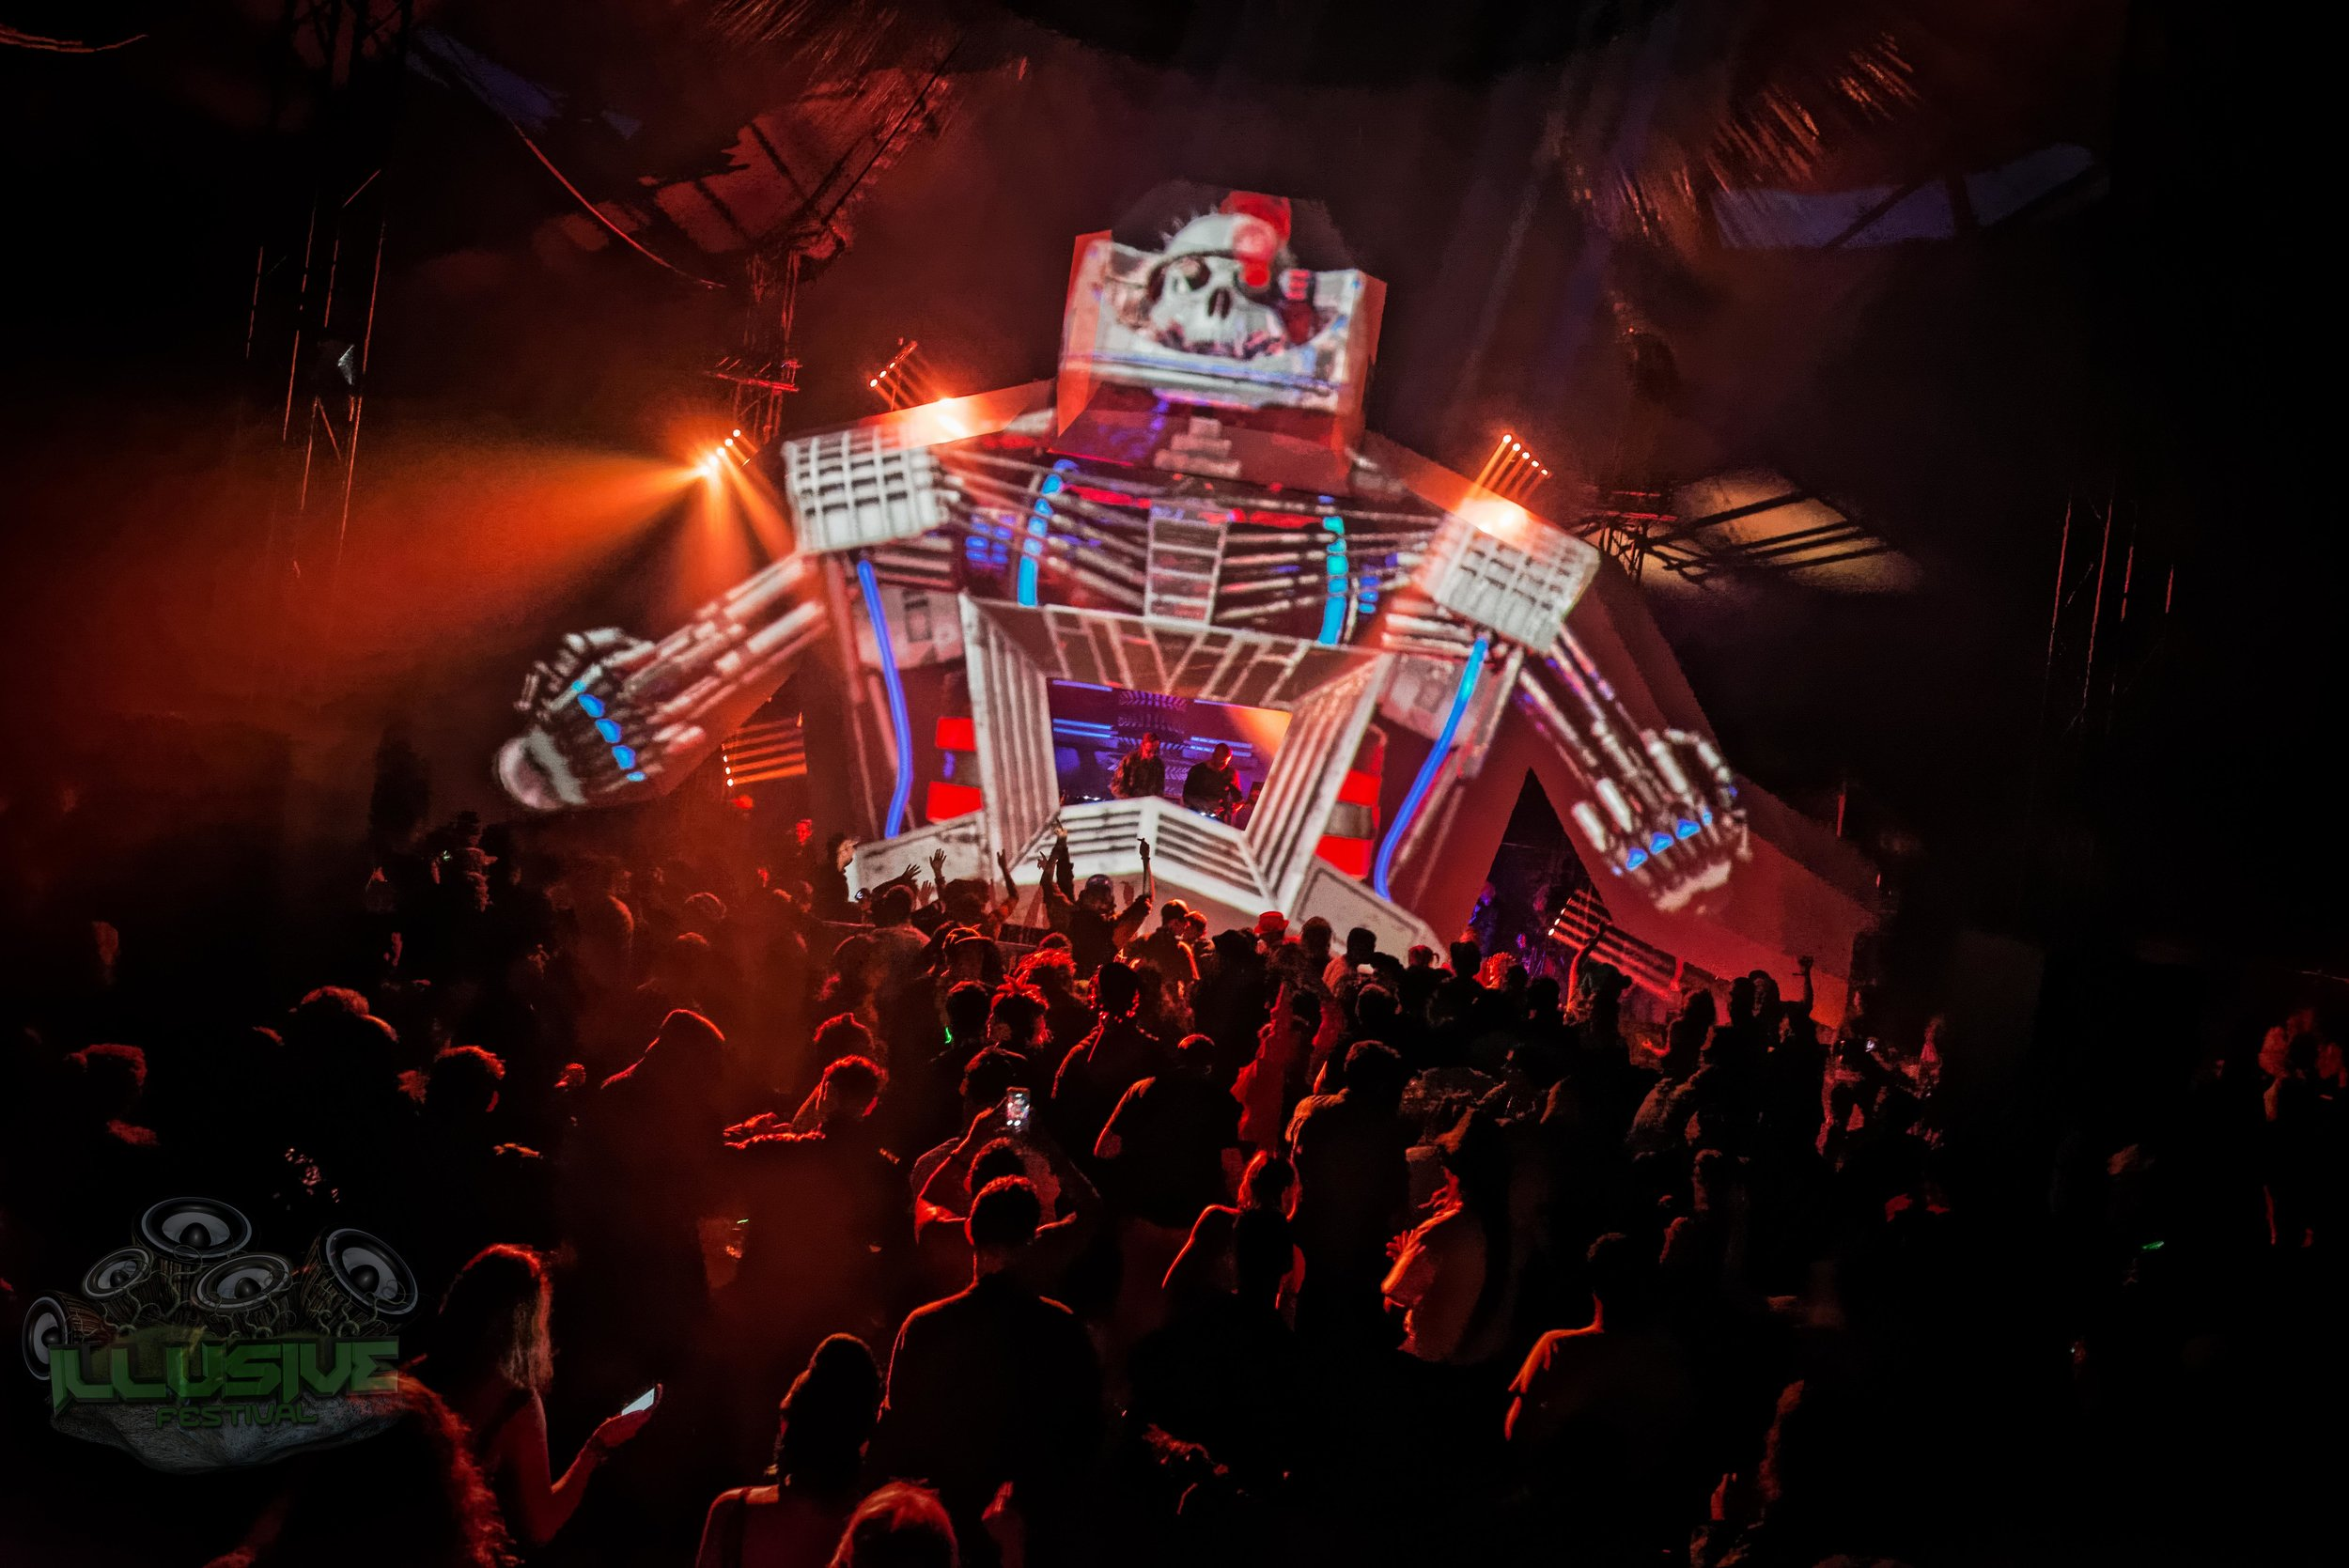 robot festival stage Lit in red.